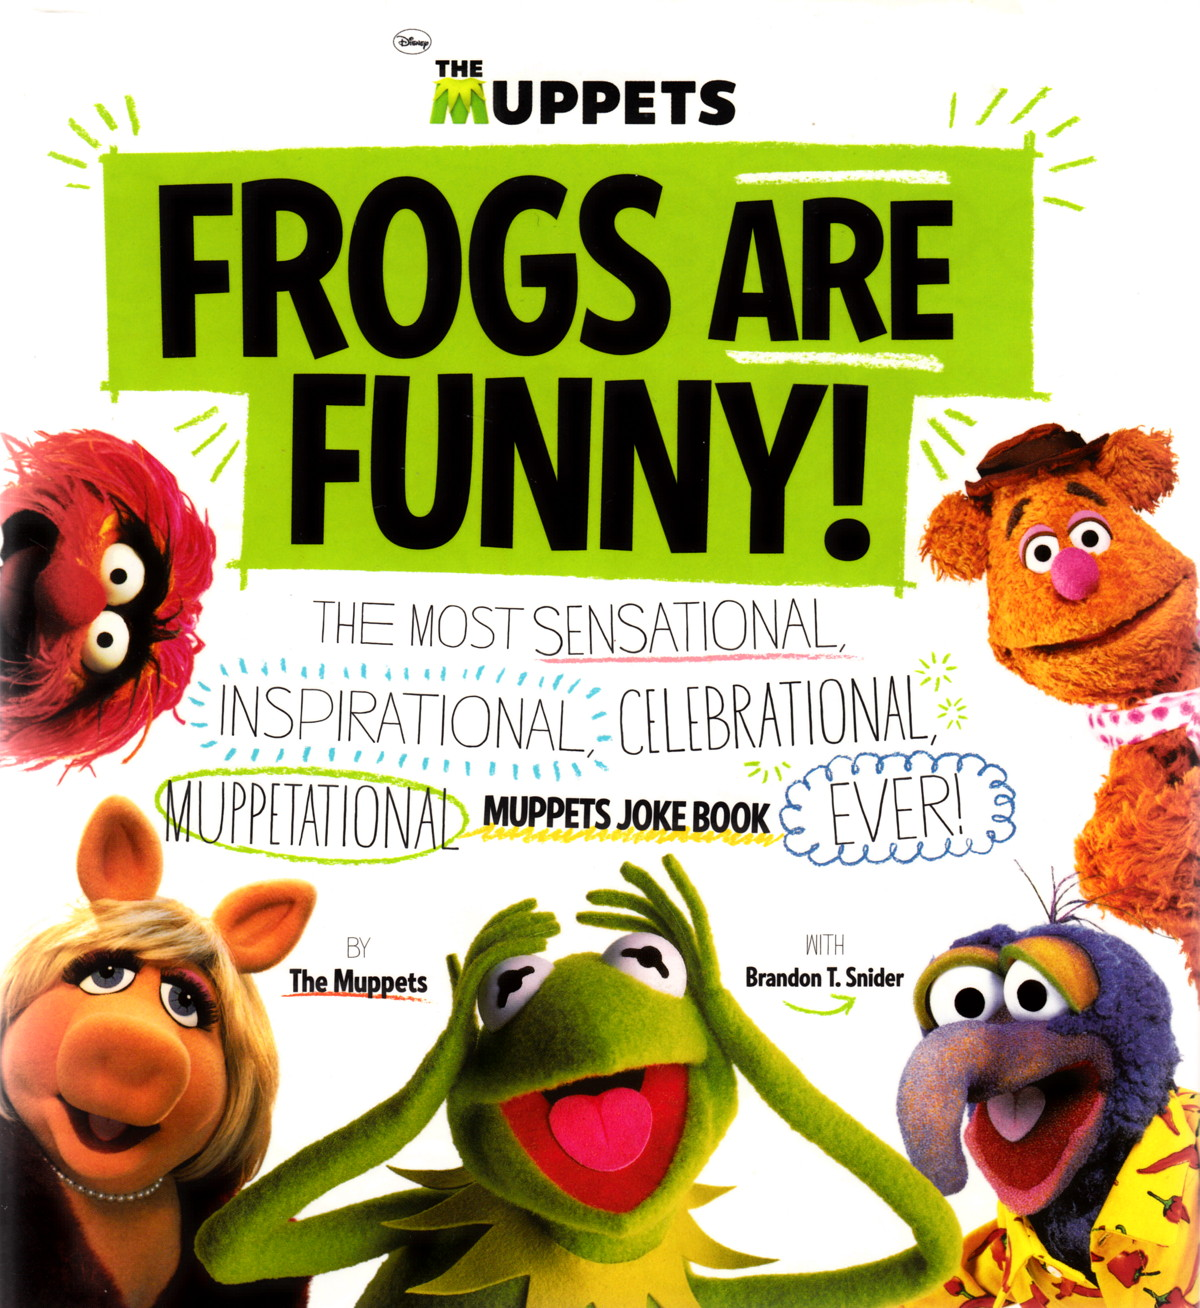 Frogs Are Funny   Muppet Wiki   FANDOM powered by Wikia